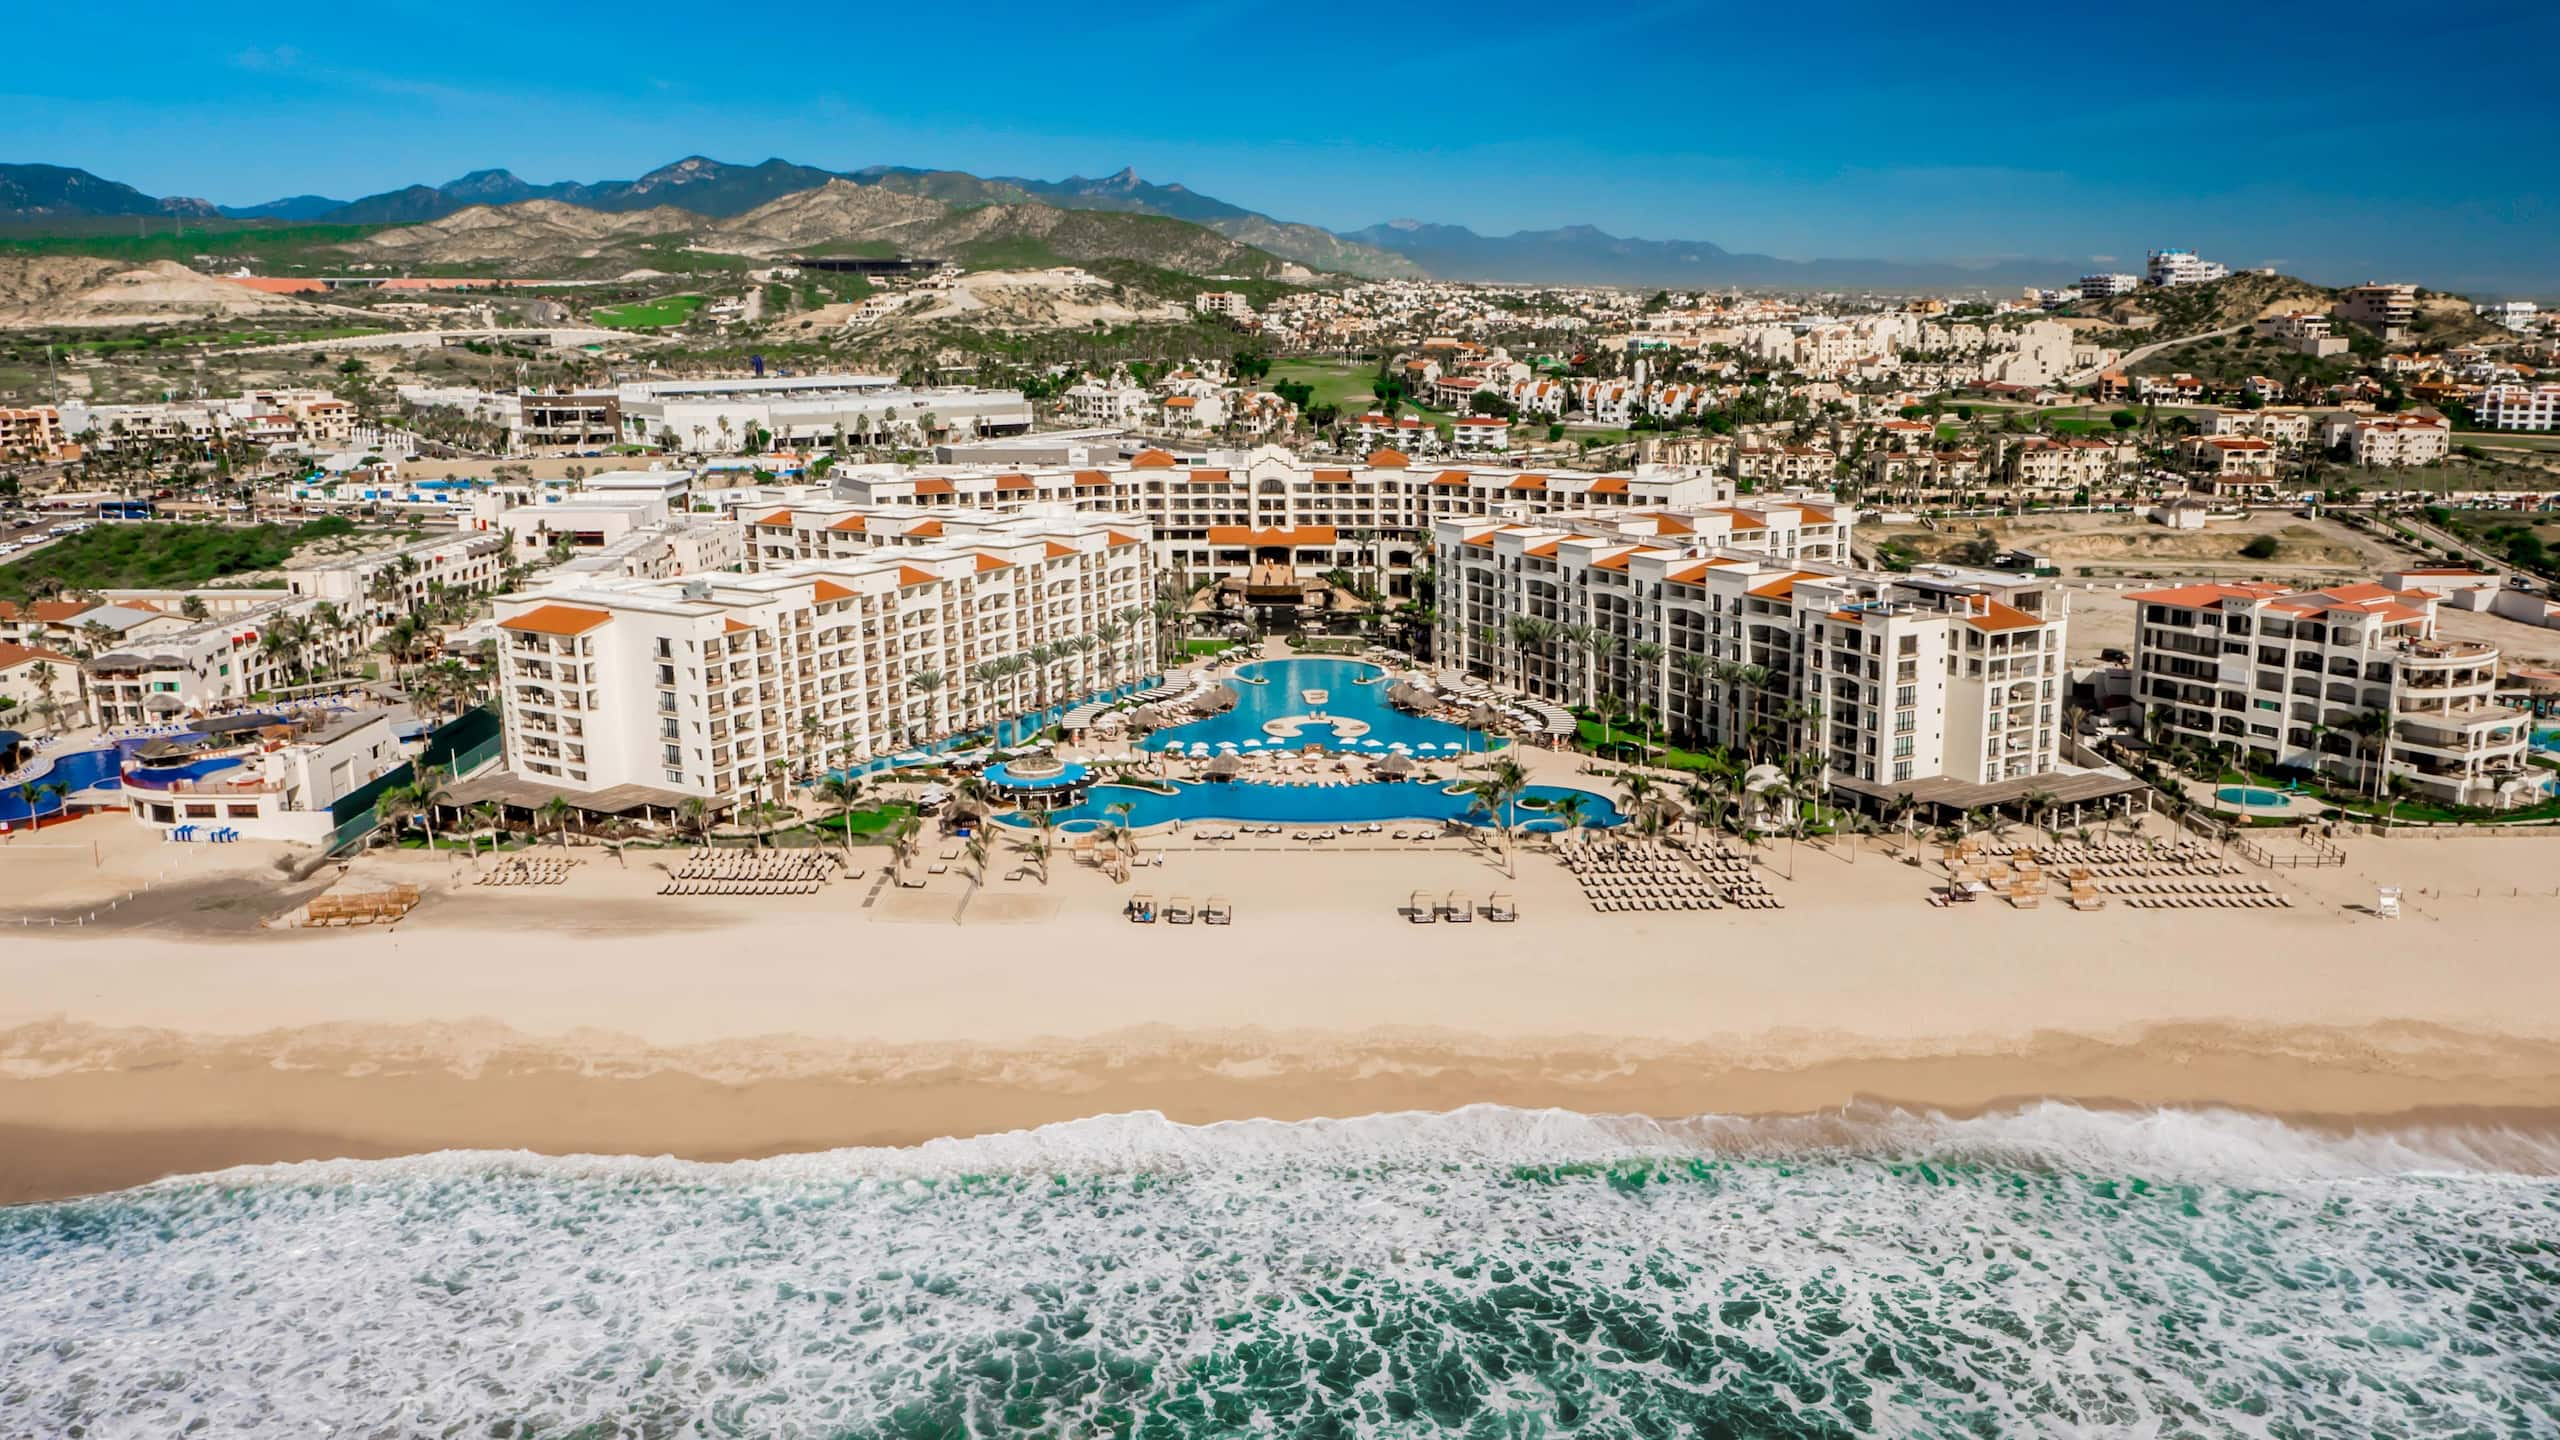 All-Inclusive Resort In Cabo For Families - Hyatt Ziva Los Cabos on map of playa grande resort in cabo, map of cabo san jose del cabo resorts, map of los cabos, map of baja, map of beaches cabo, map of misiones del cabo, map of concord nh streets, map of medano beach, map of properties in san jose del cabo, map with resturants in cabo, secrets resort in cabo, printable maps of cabo, map of marina cabo, map of cabo st. lucas, map of cabo area,